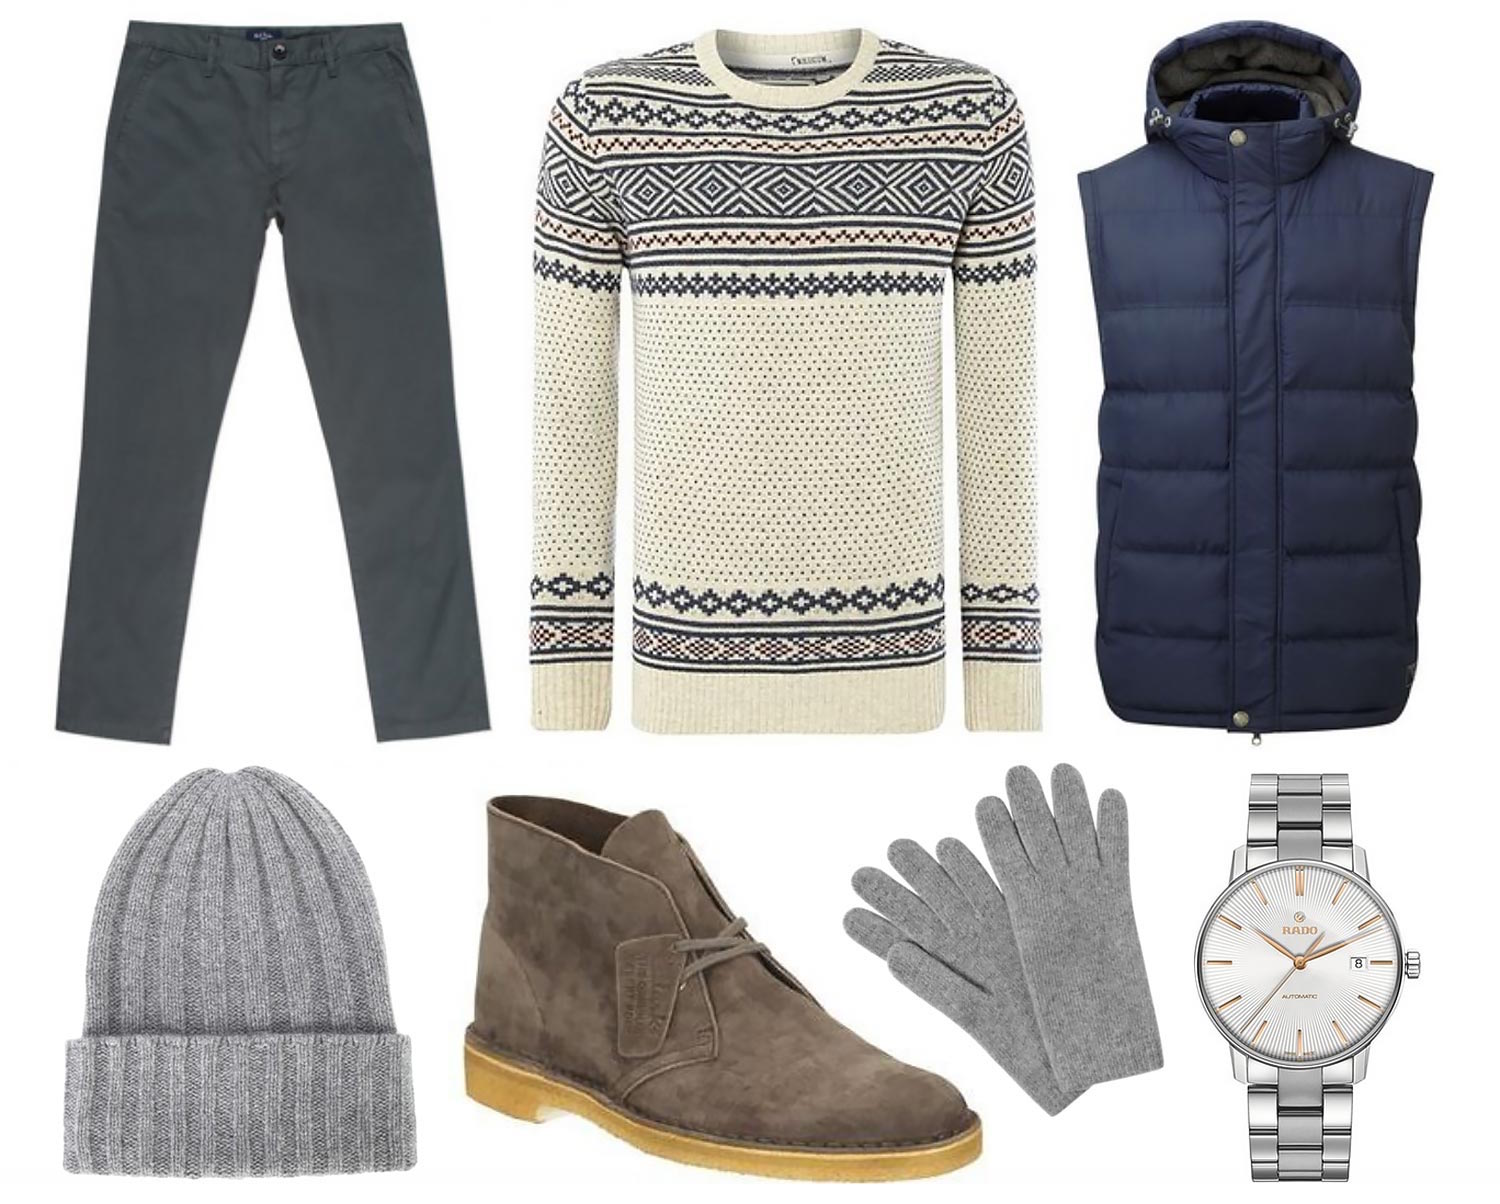 mens-dickies-country-outfit-fashionable-with-chino-jeans-grey